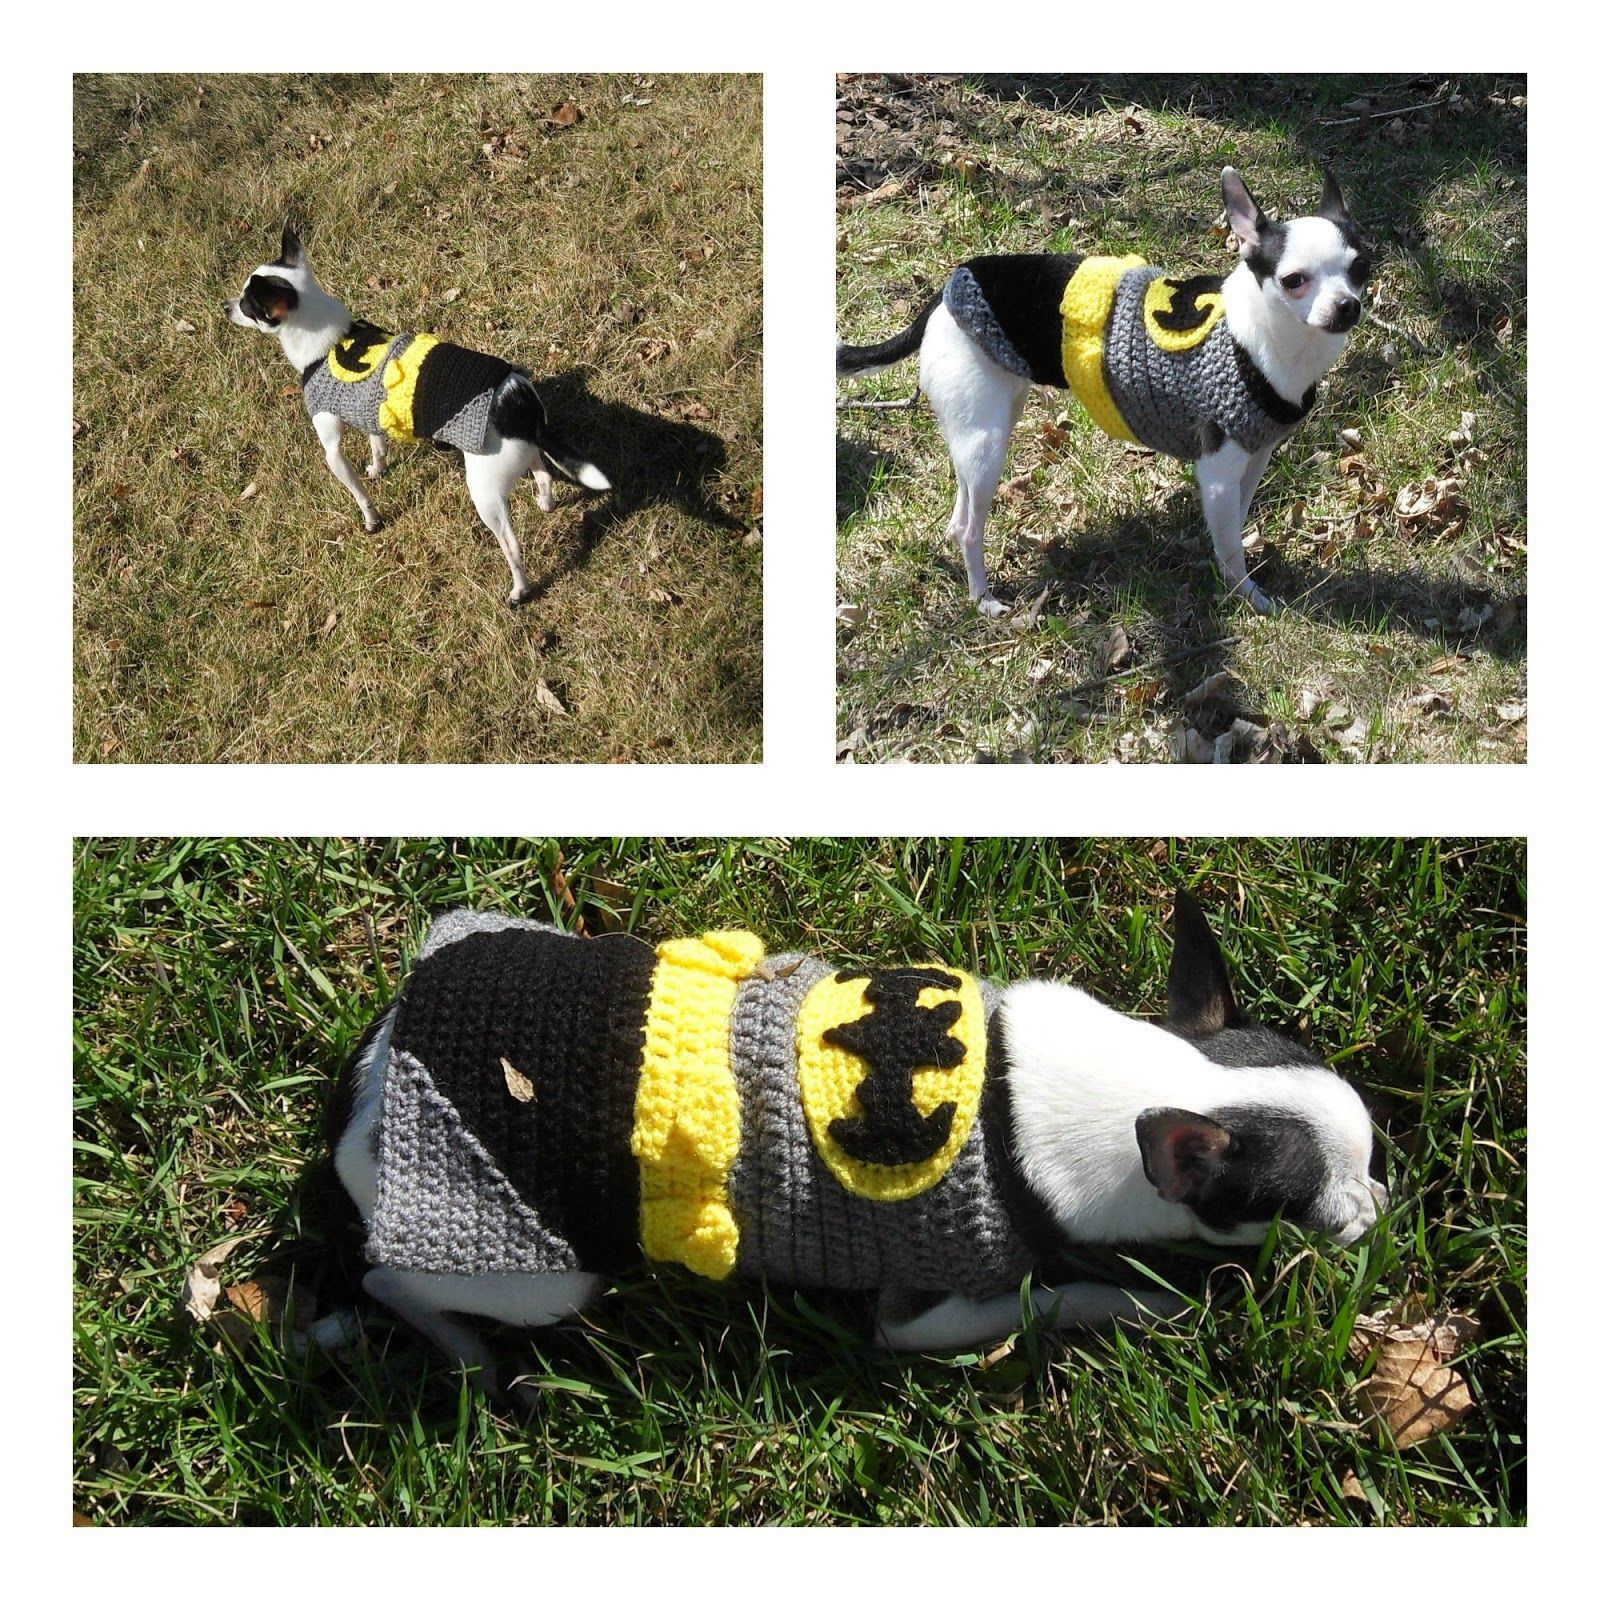 Mandalynns crochet treasures crochet batman look a like dog crochet batman dog costume does your pup zoom and fly well then this is for you crochet batman outfit perfect for every day wear or a g bankloansurffo Gallery